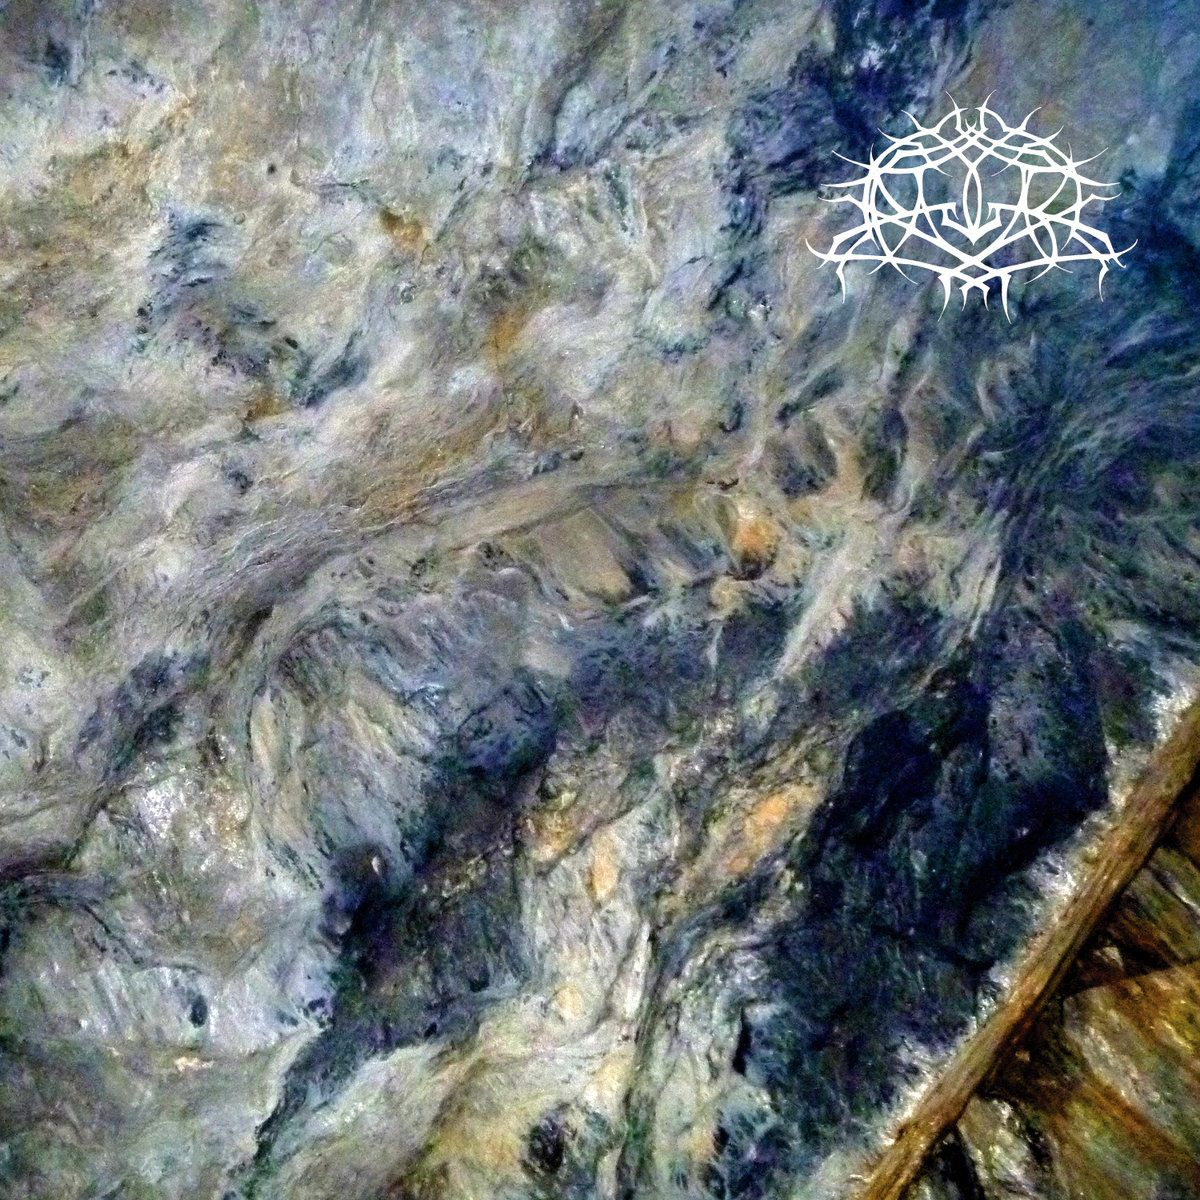 Listen to Krallice's New Album 'Hyperion' - http://bit.ly/1O0n08A